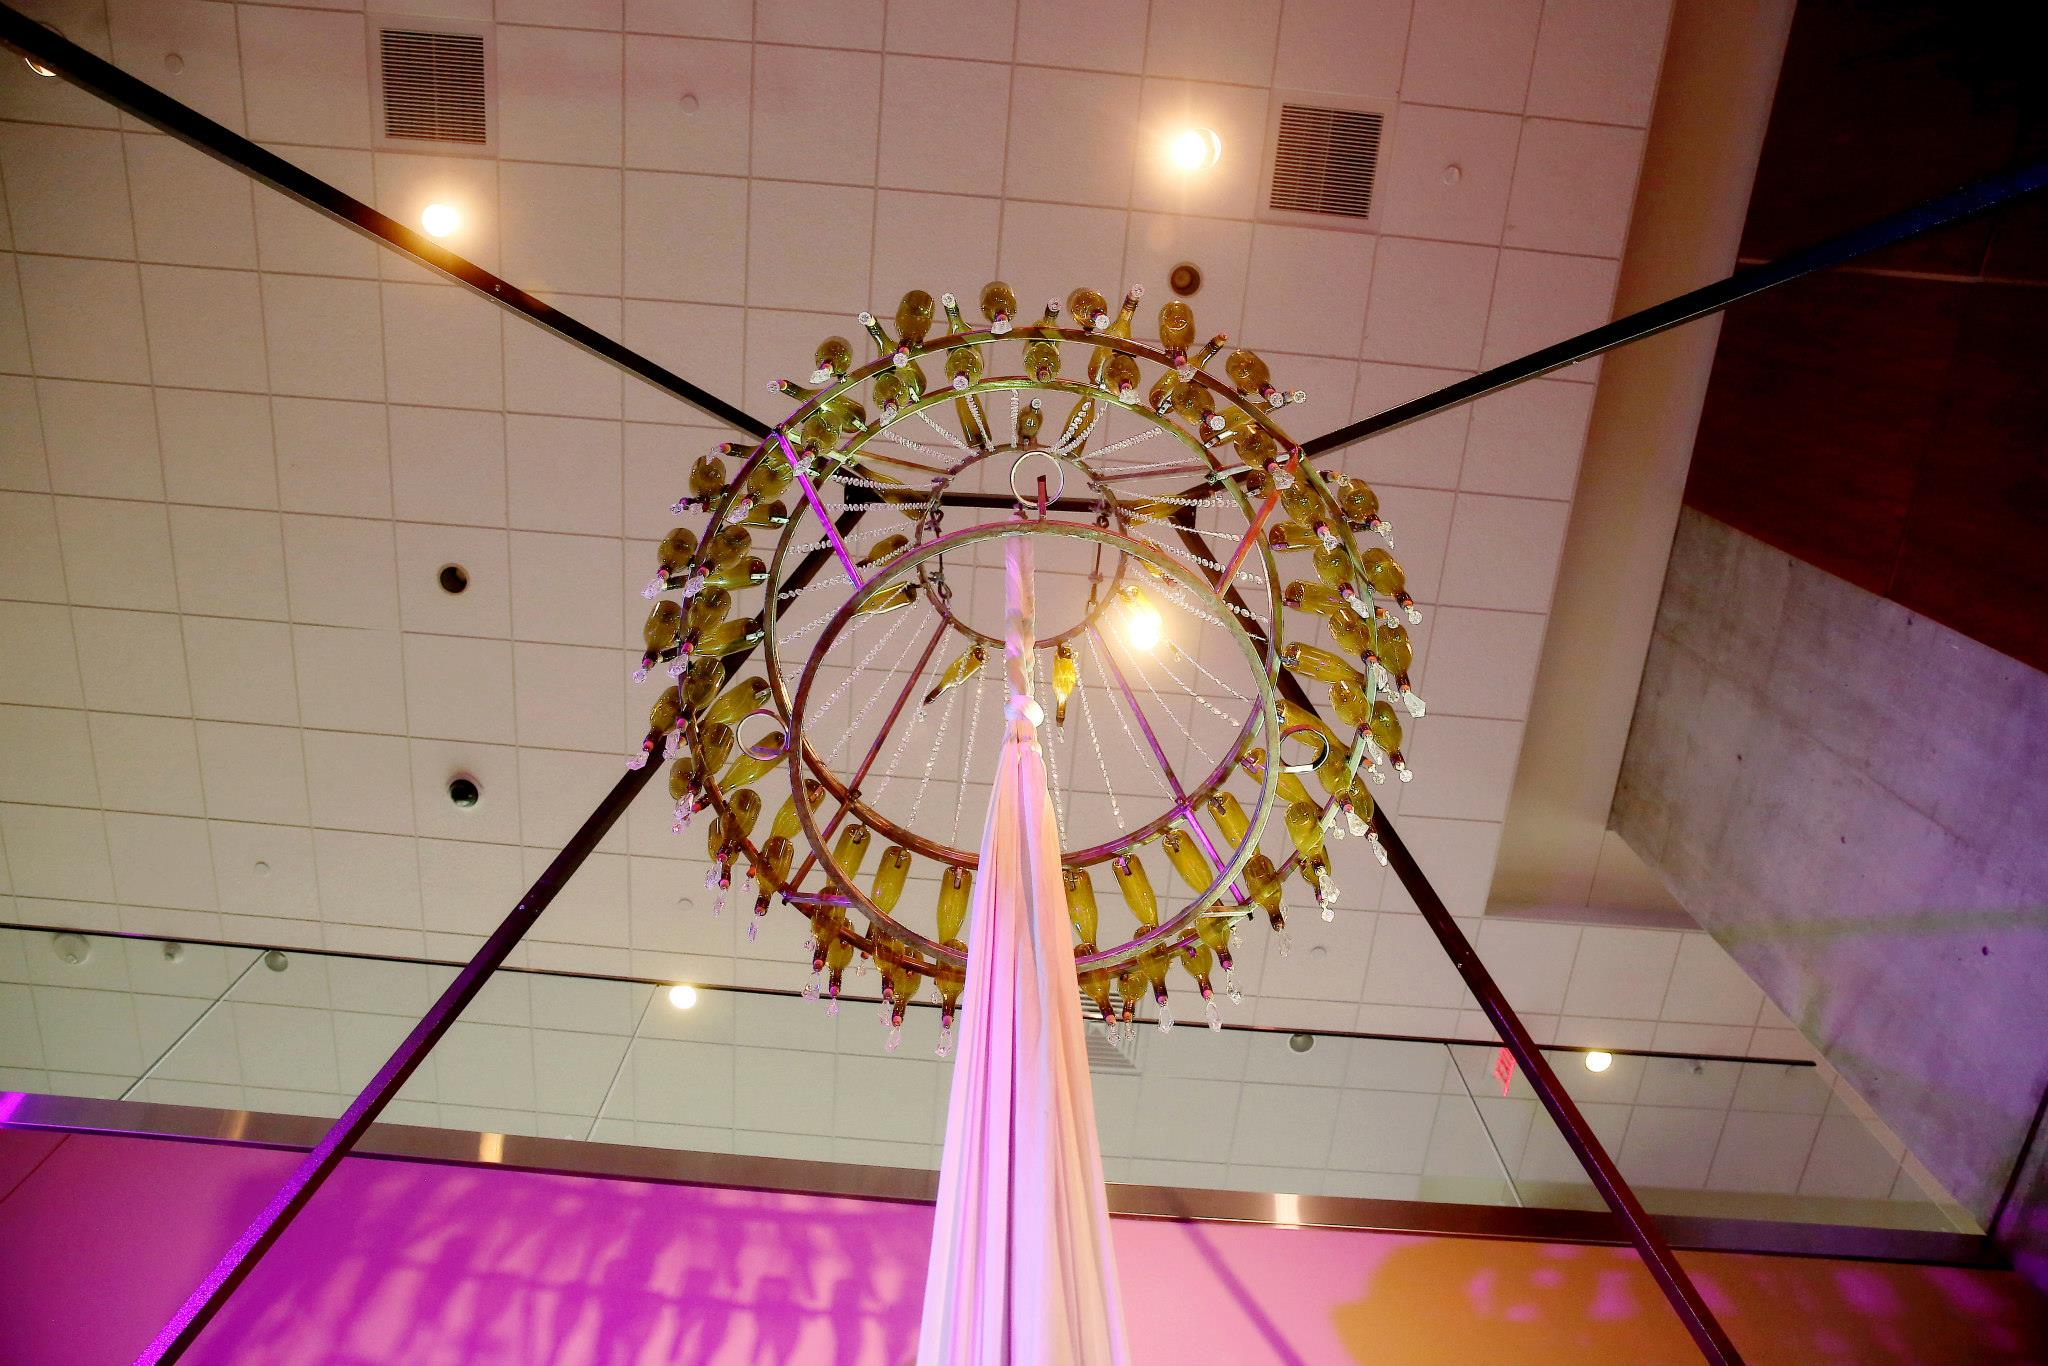 Downtown Grand Rapids Event with Circus Acrobat